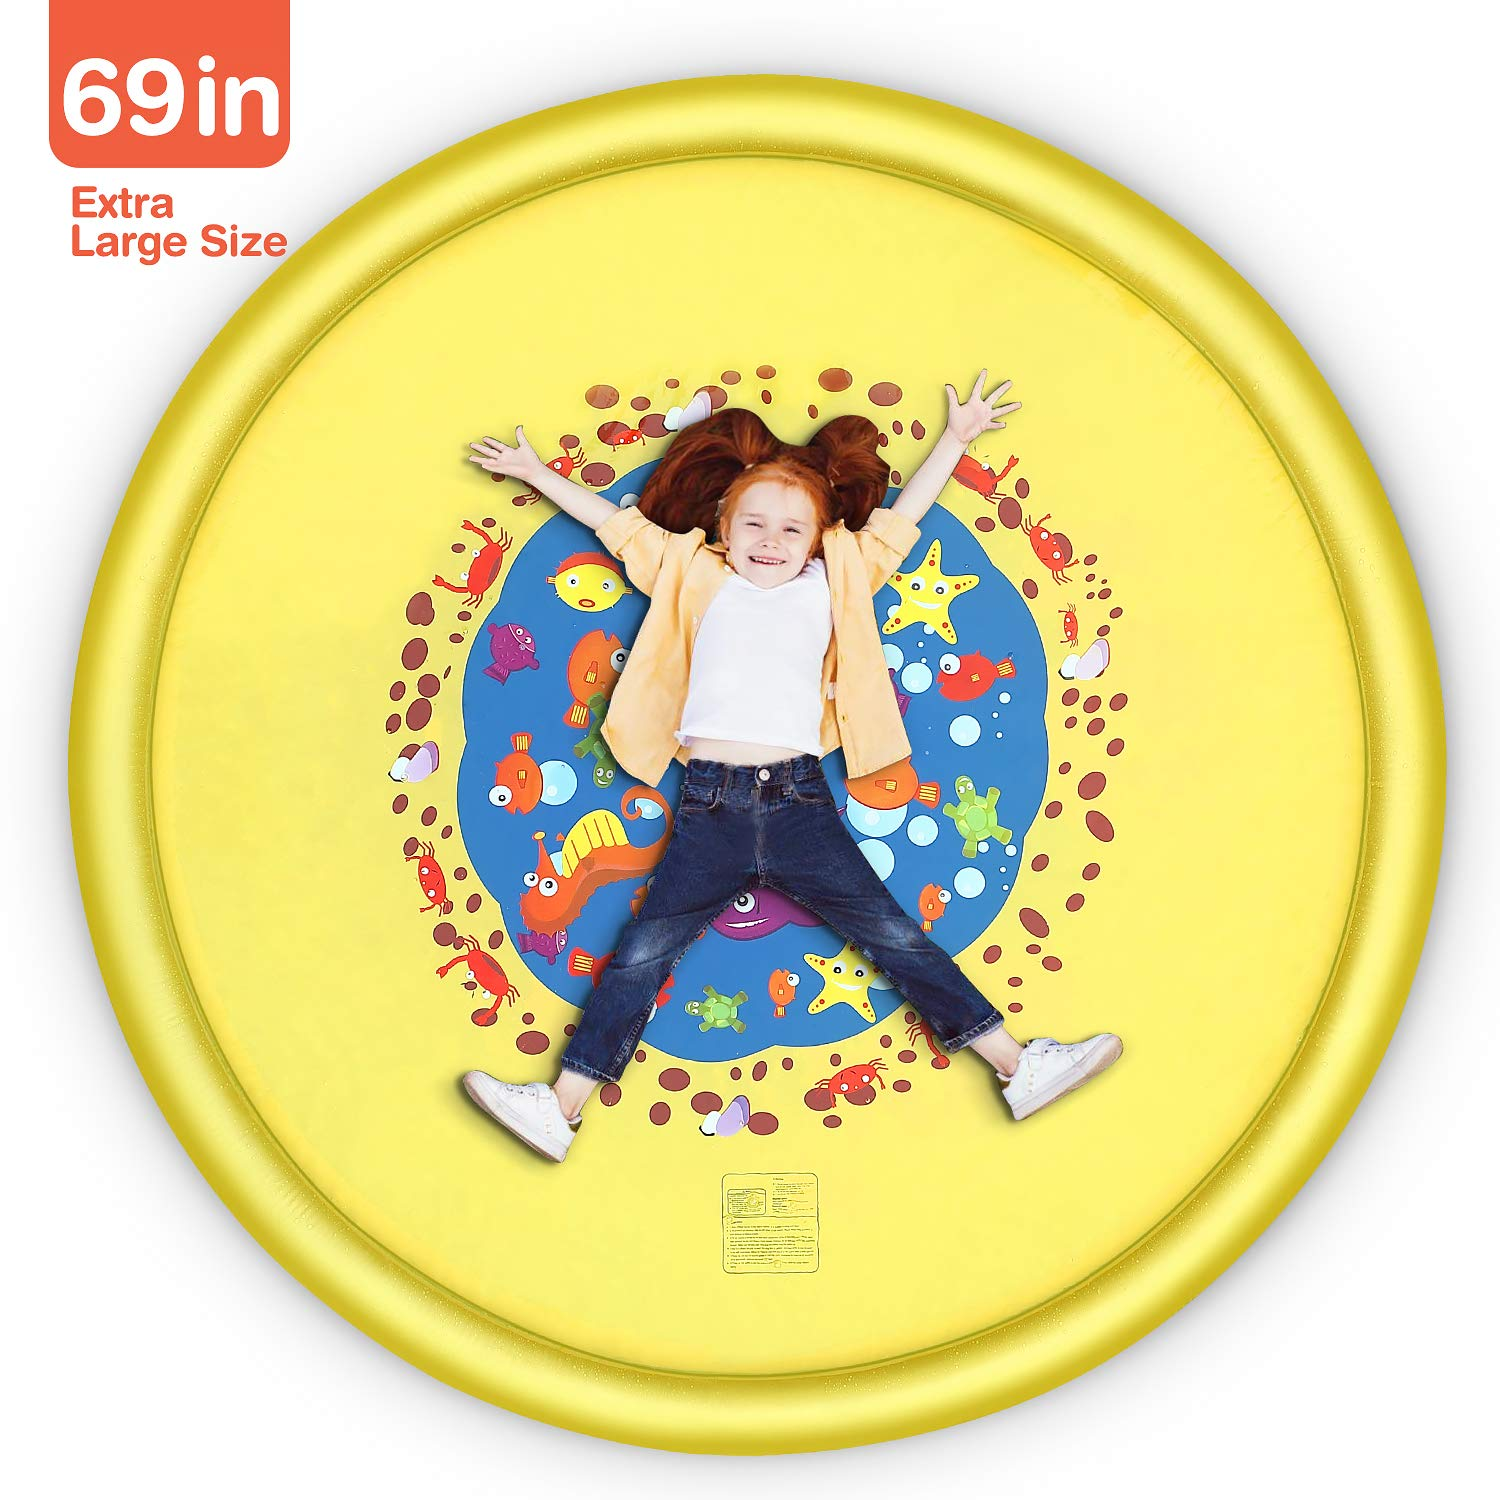 Splash Pad, 69 Inches No More Burst Sprinkle and Splash Play Mat Sprinkler for Kids Boys Girls Fun Splash Play Mat Summer Outdoor Sprinkler Pad Party Water Toys Extra Large Children's Sprinkler Pool by tomser (Image #6)